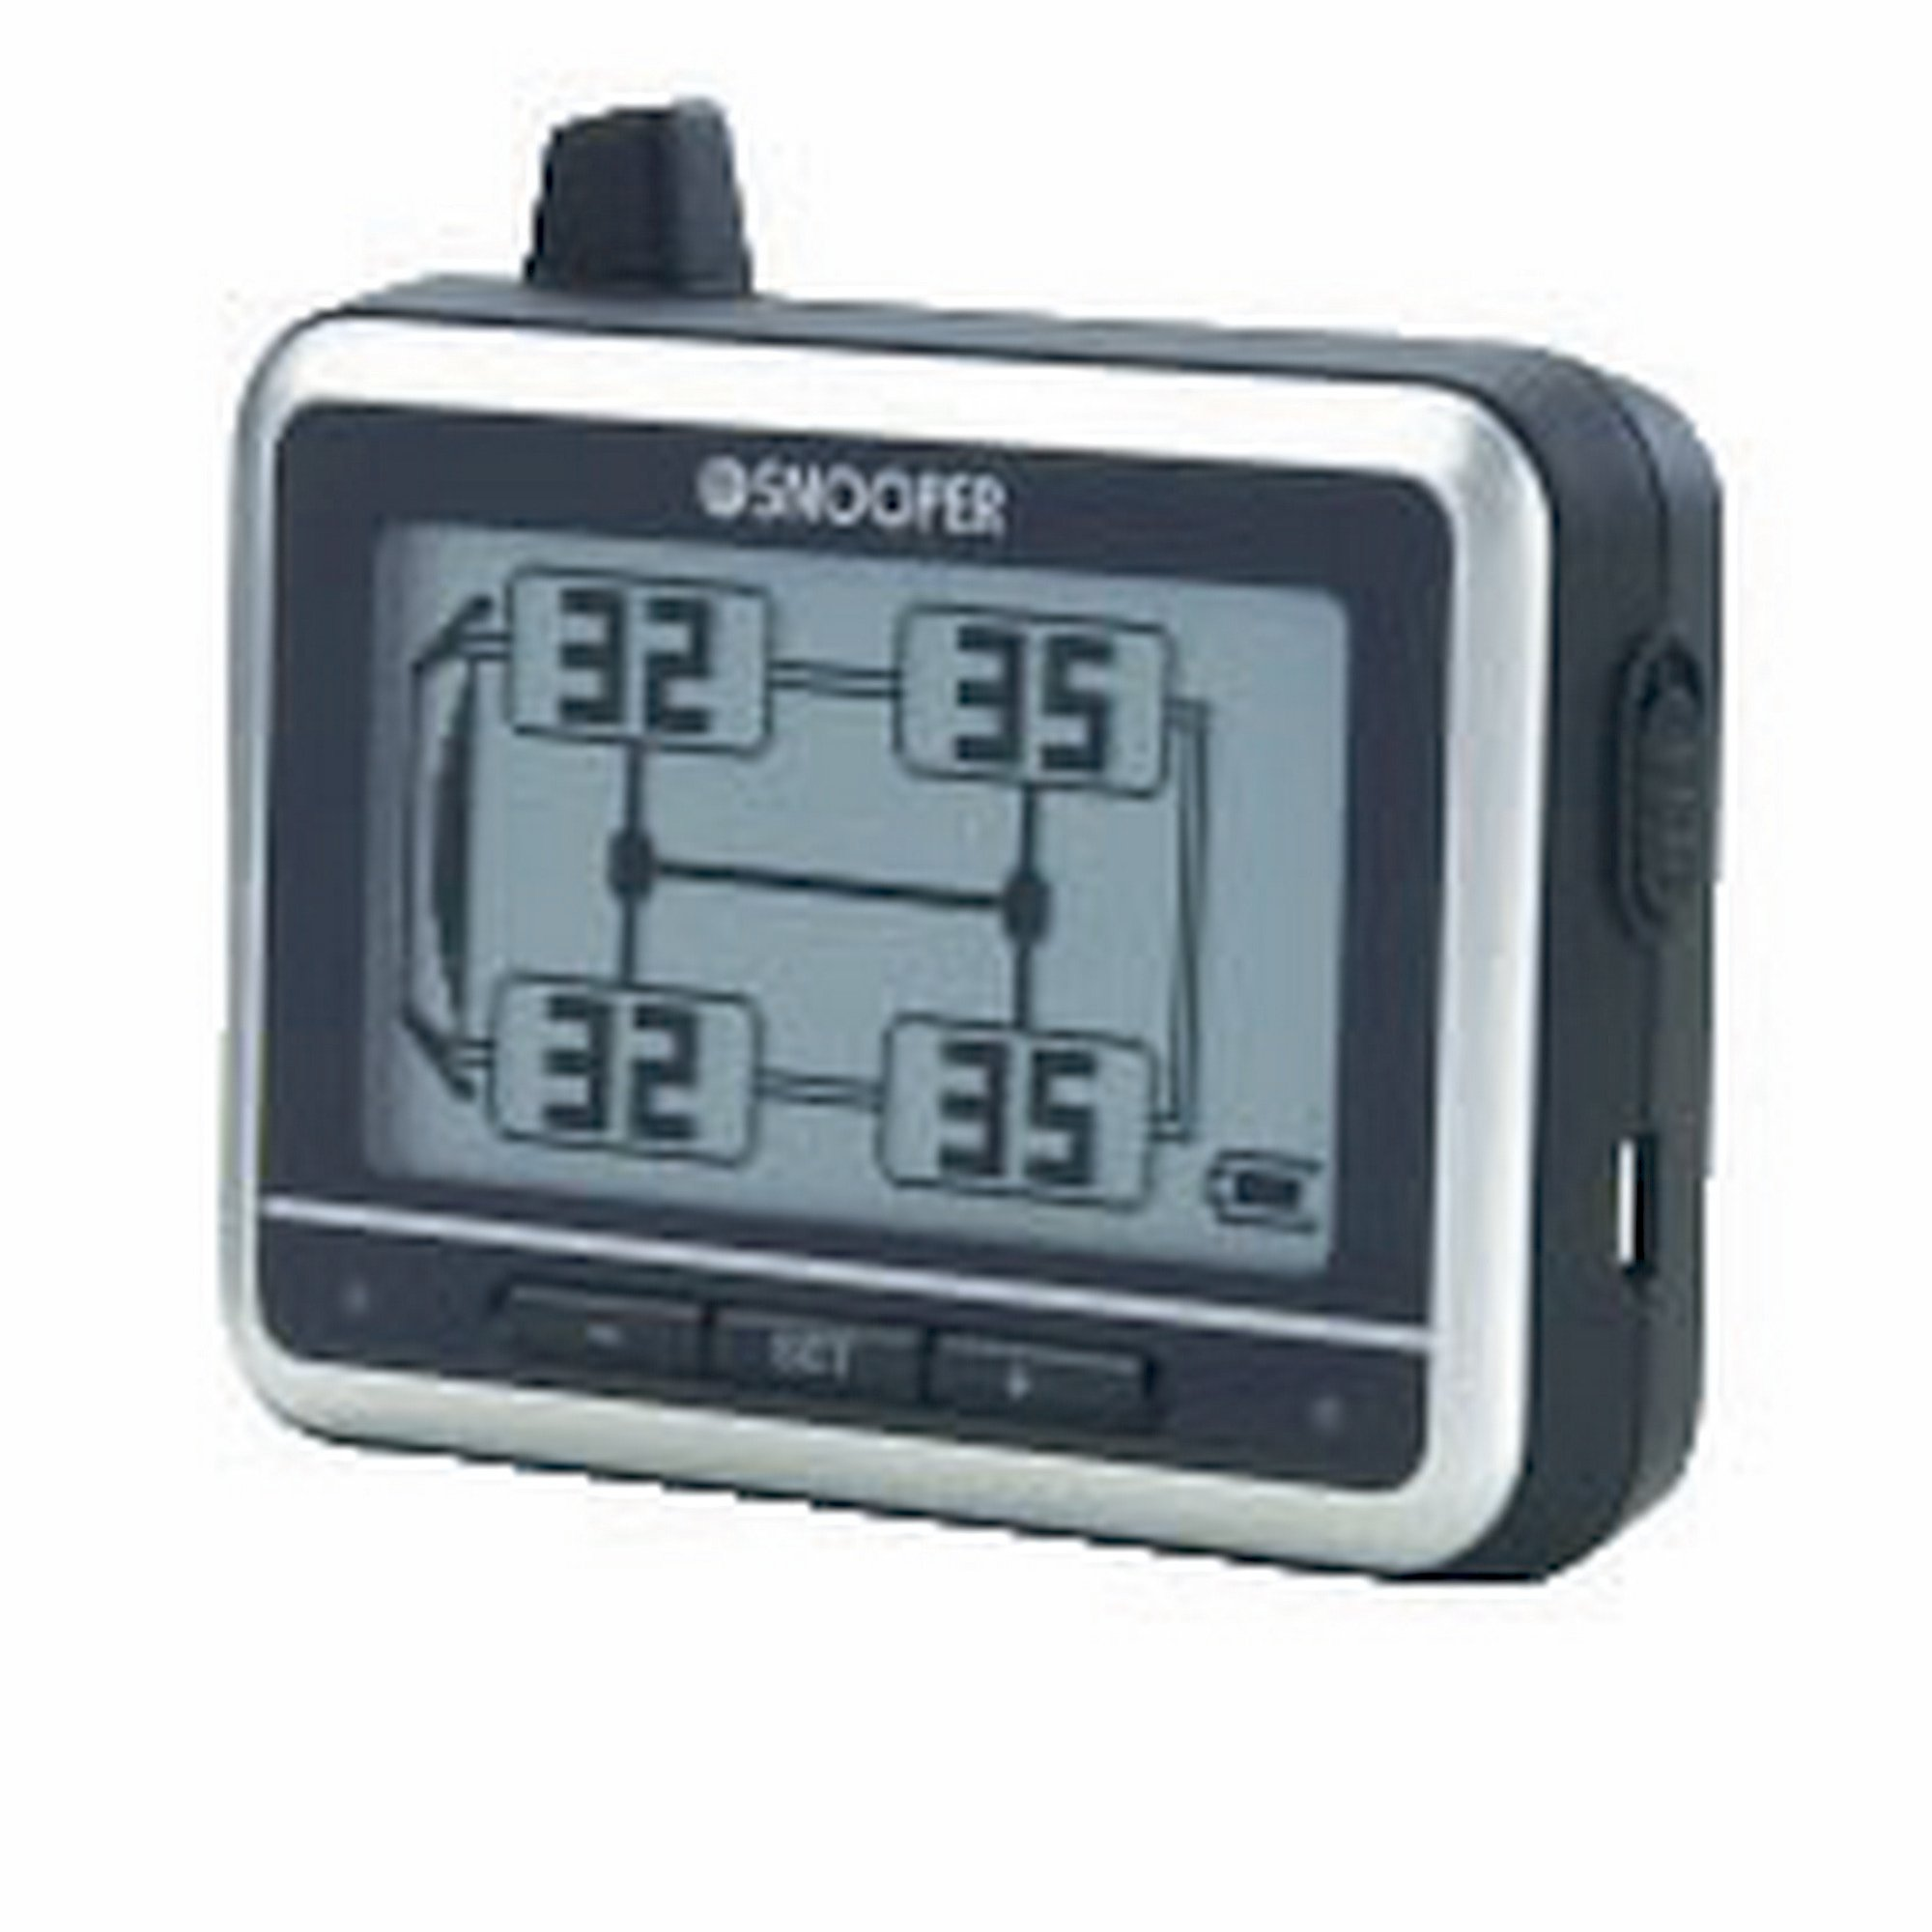 Snooper Tyre Pilot Tyre/Tire Pressure Monitoring Display Unit And Sensors (One Size) (Black/Silver)